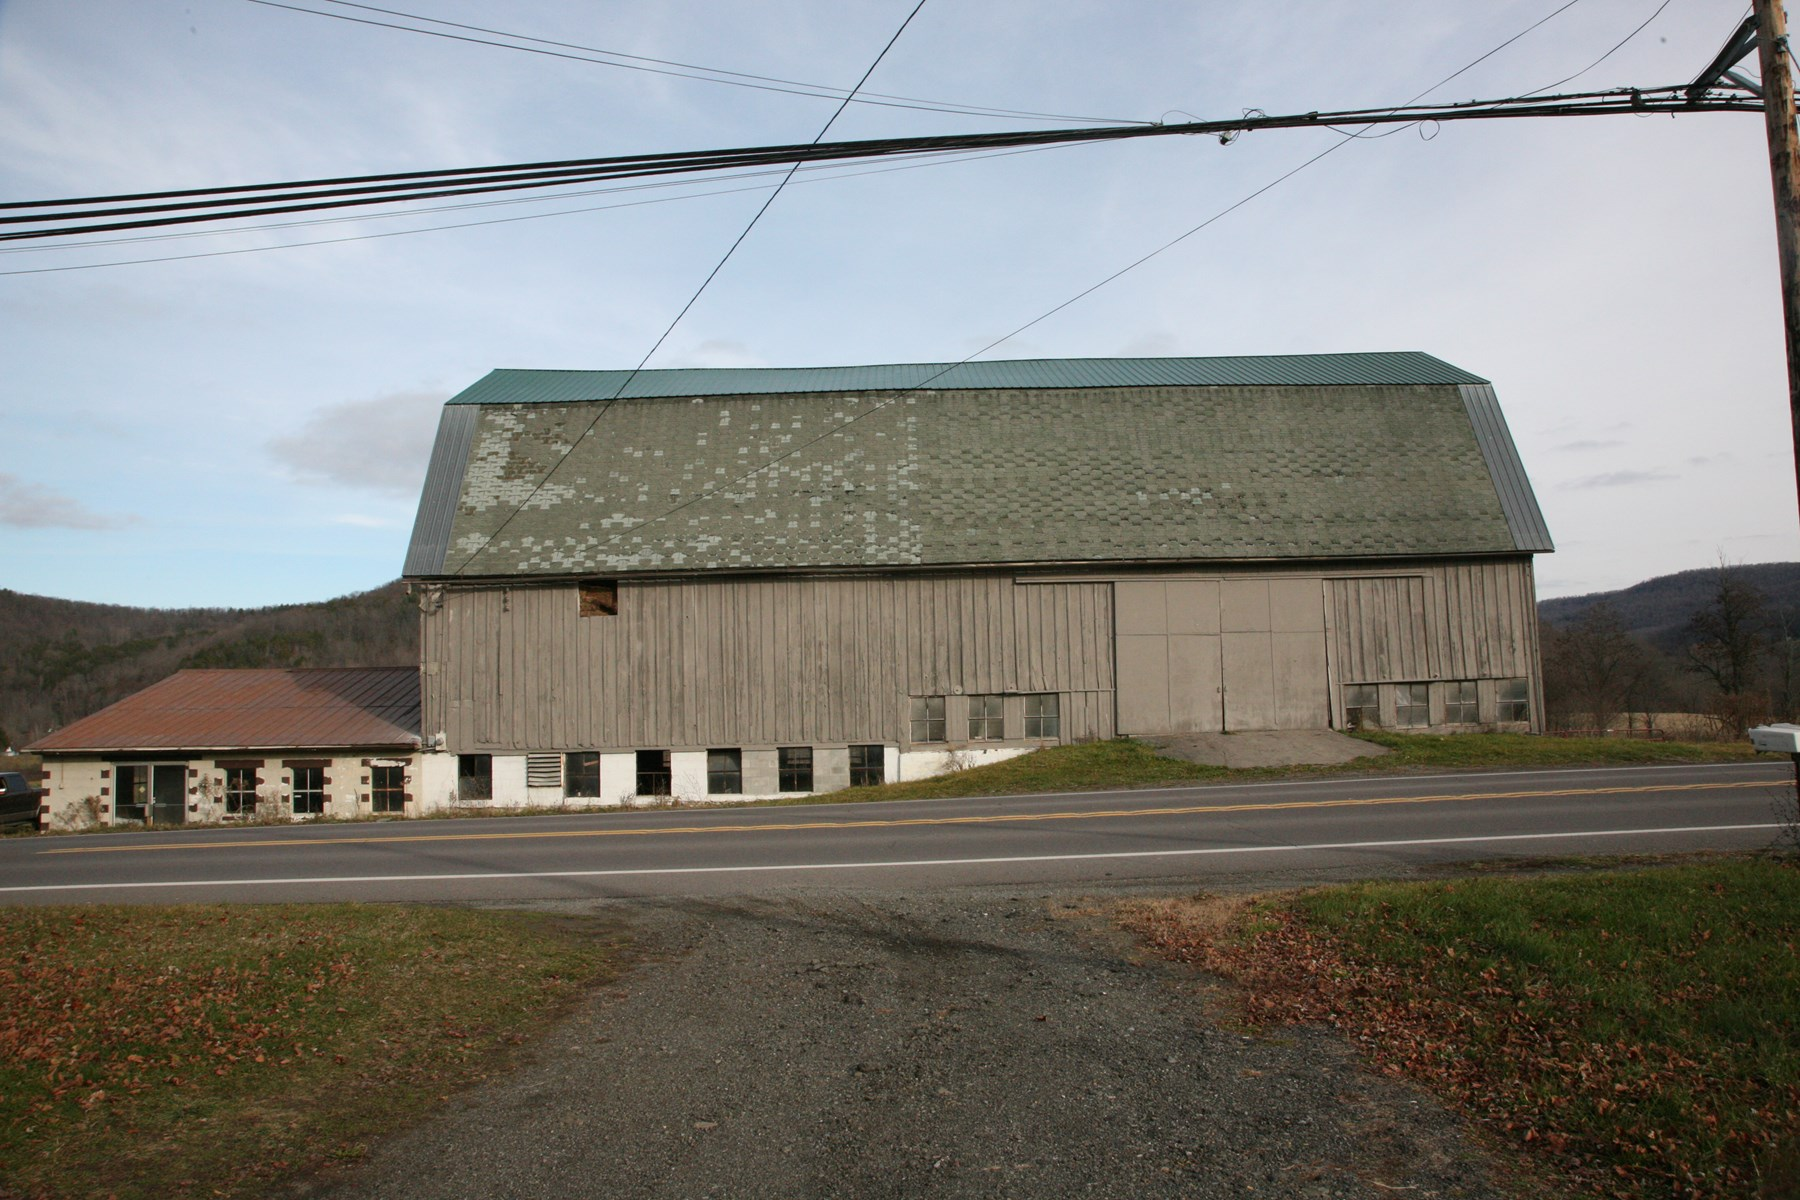 FAMILY FARM: BRADFORD COUNTY, PA - 188 ACRE GENERAL FARM